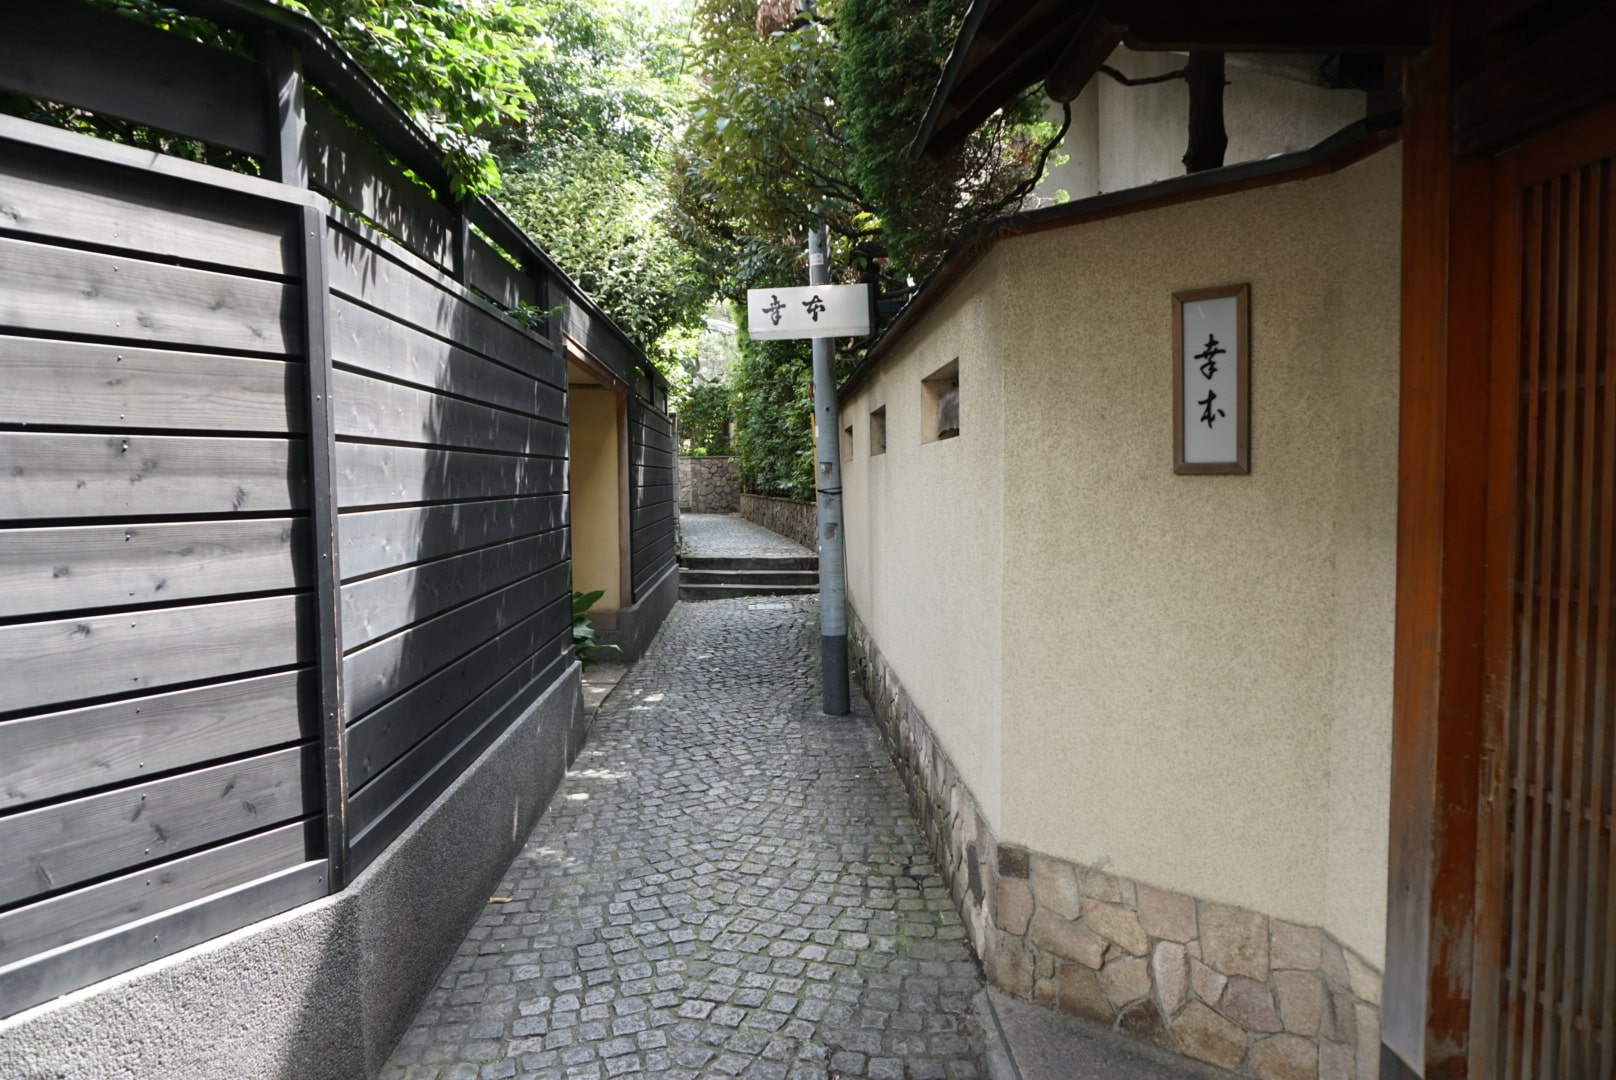 Stone-paved alley in Kagurazaka